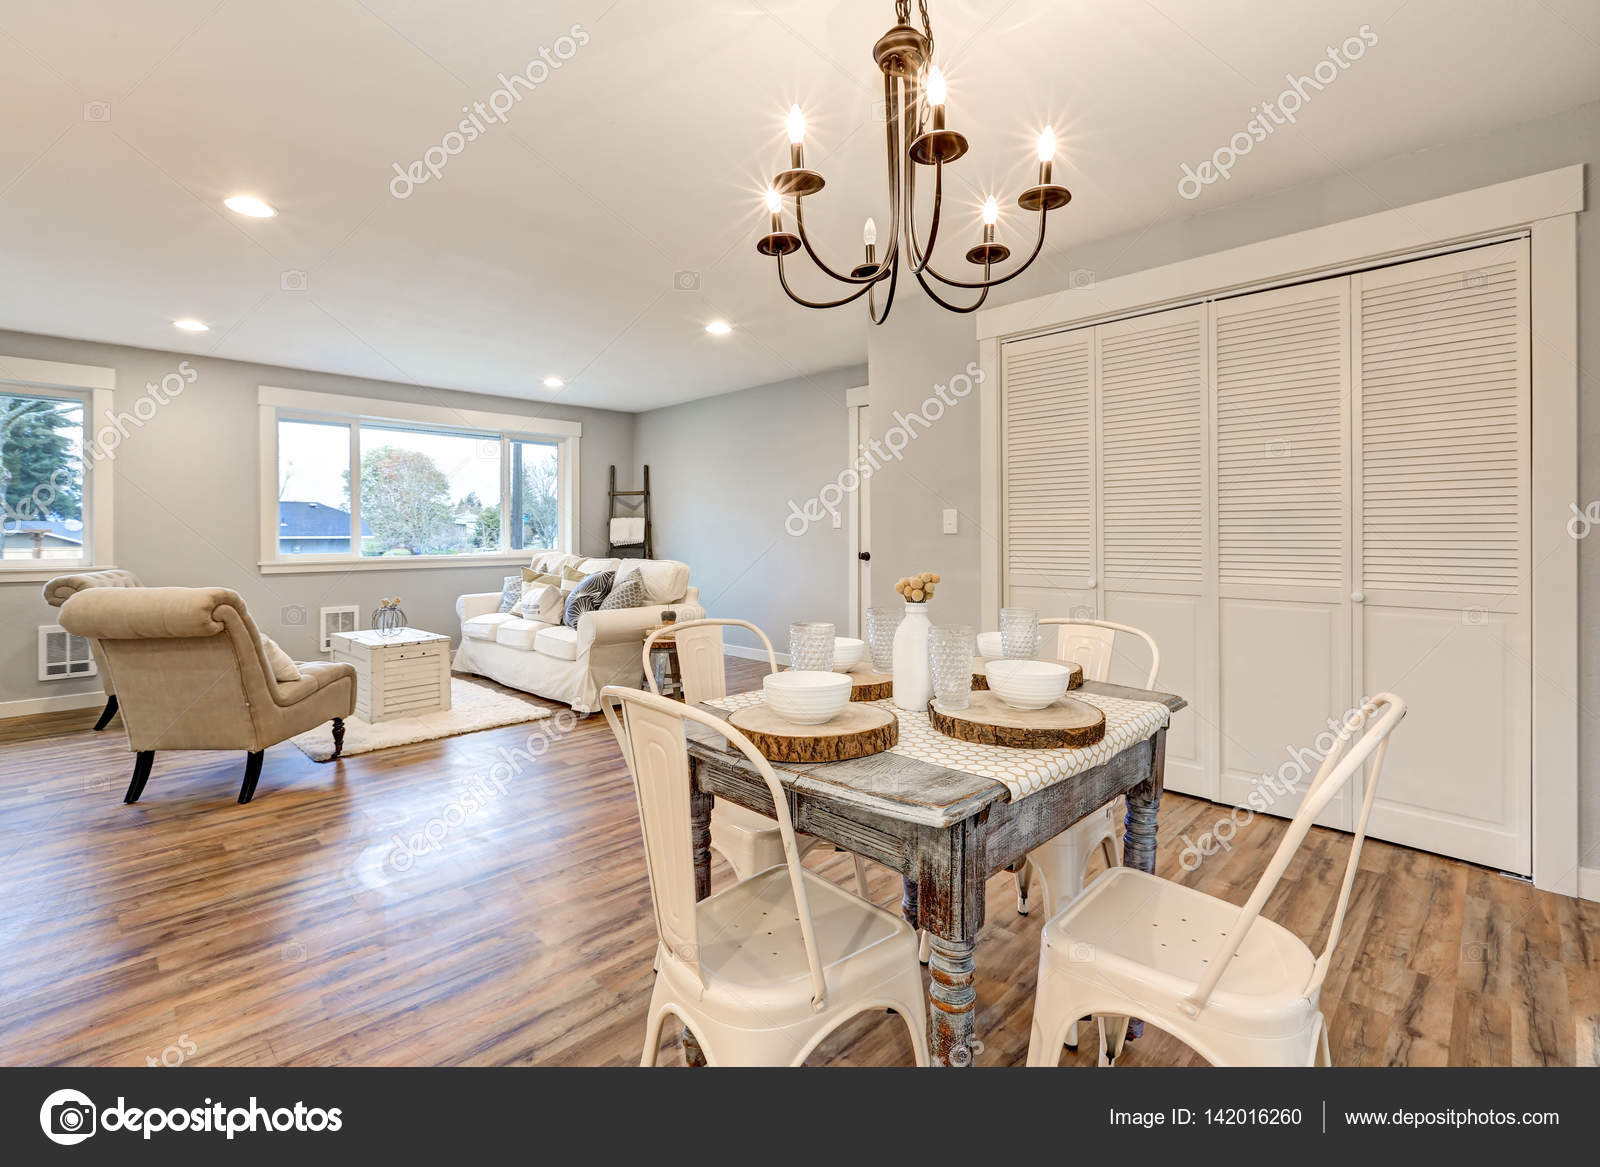 Newly remodeled one story craftsman home interior. — Stock Photo ...